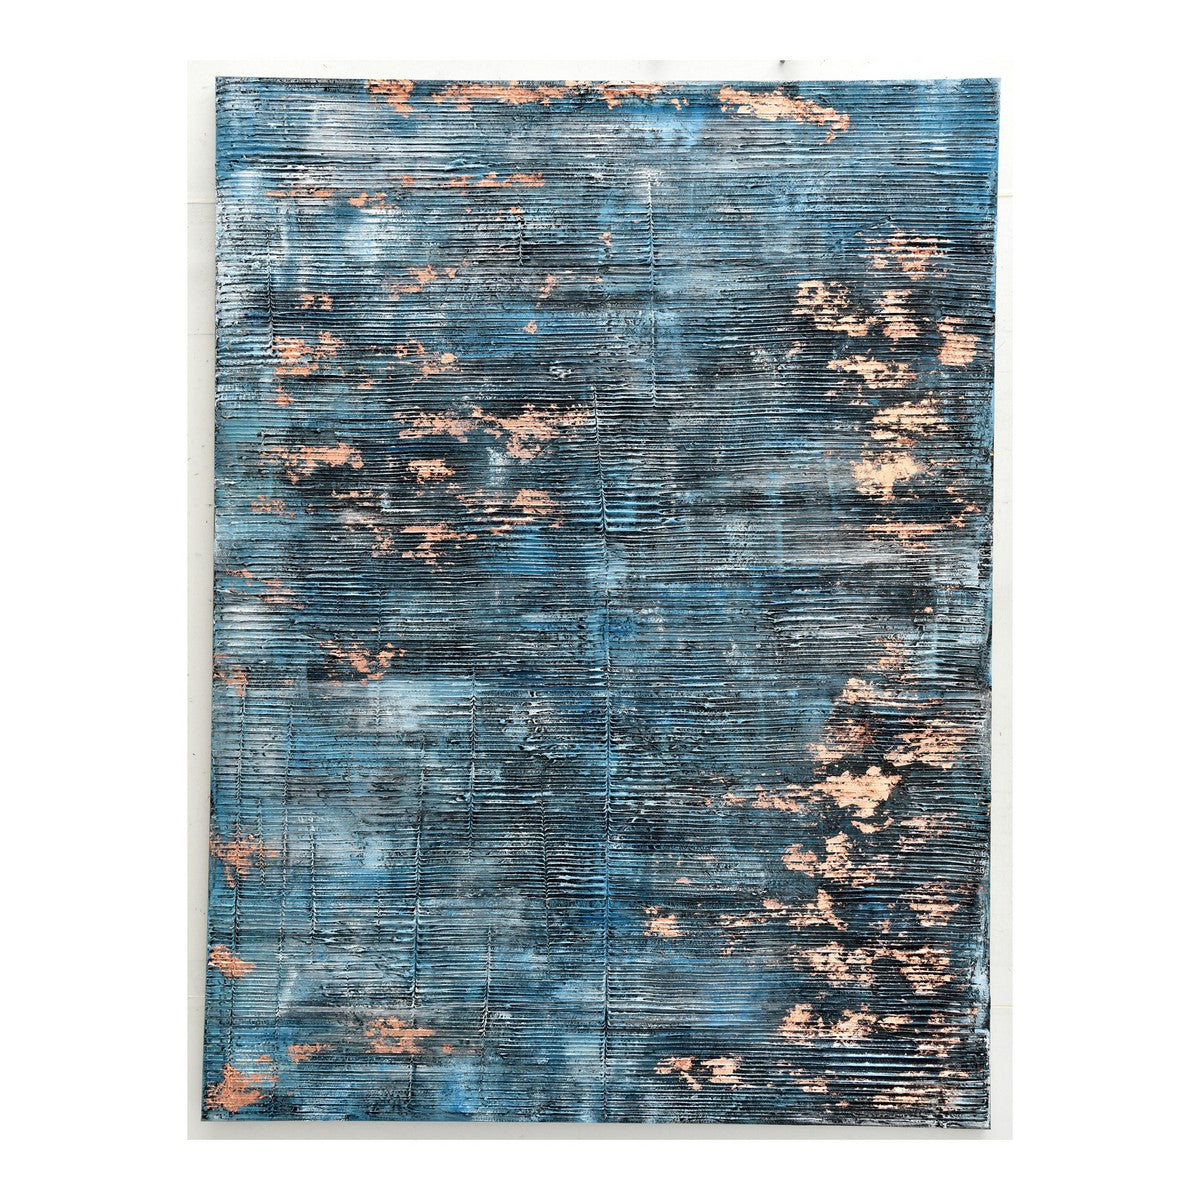 Moe's Home Collection Glimmer Wall Décor - JQ-1035-37 - Moe's Home Collection - Art - Minimal And Modern - 1